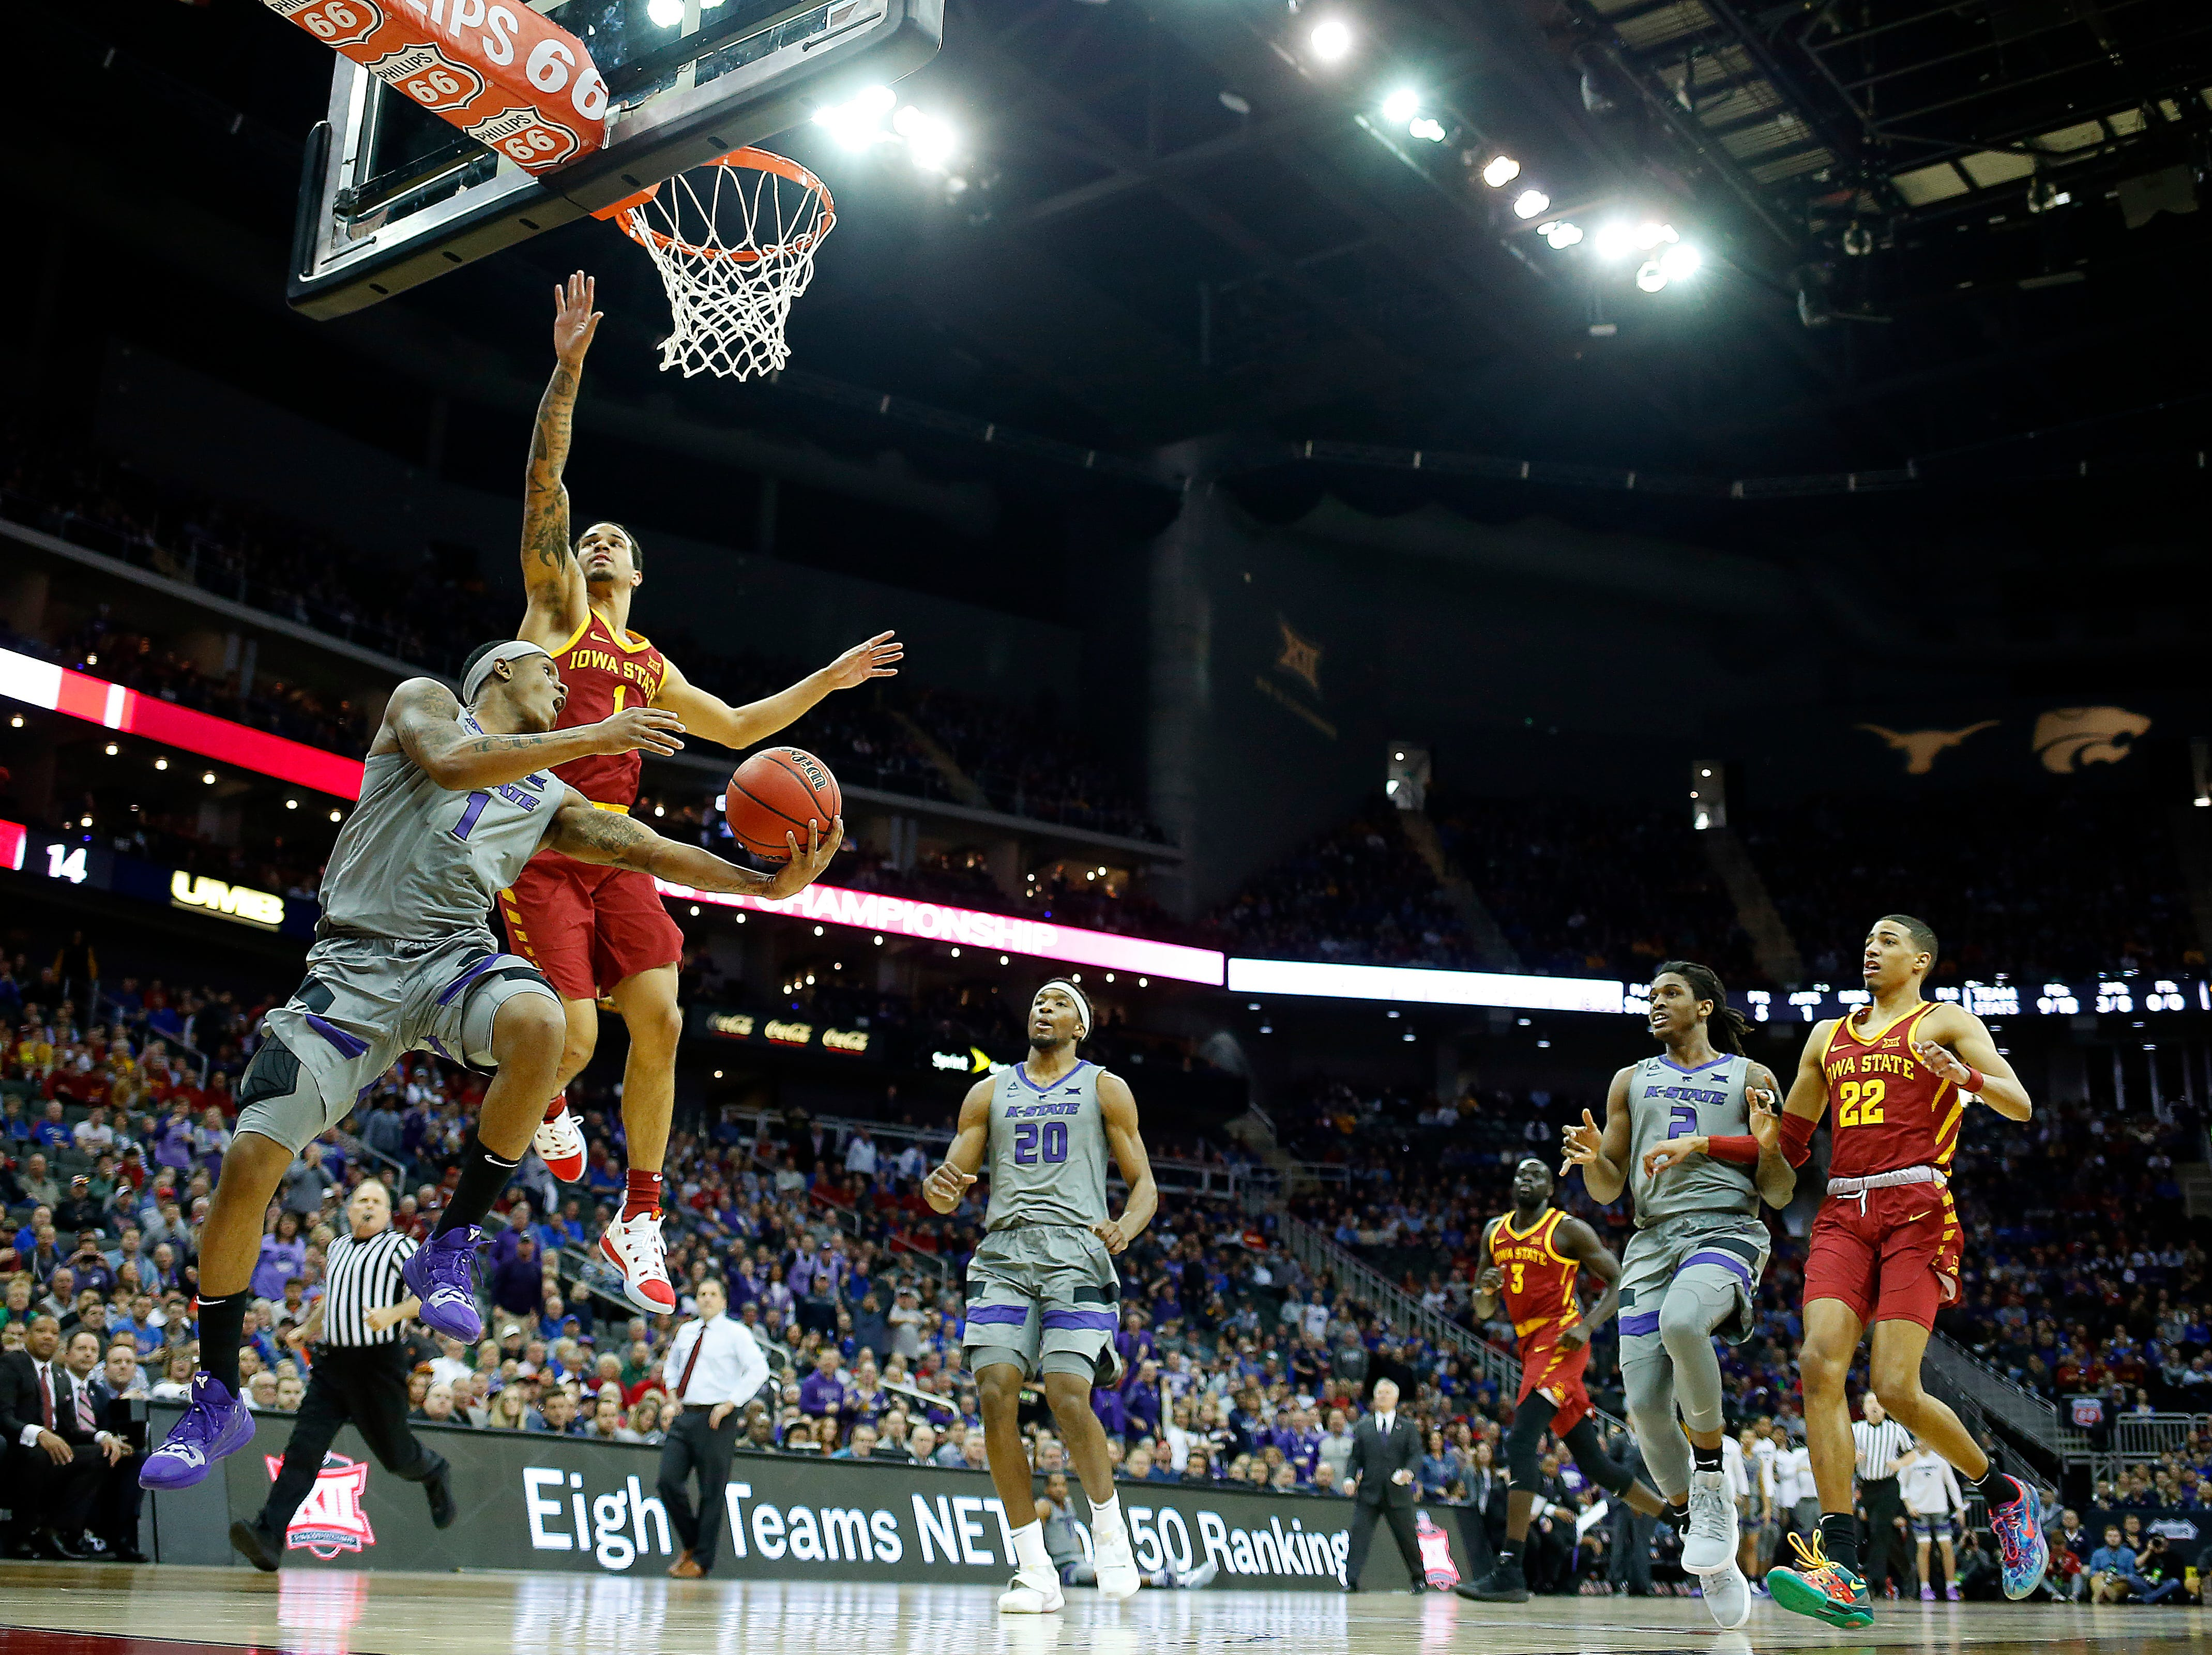 KANSAS CITY, MISSOURI - MARCH 15:  Shaun Neal-Williams #1 of the Kansas State Wildcats drives toward the basket as Nick Weiler-Babb #1 of the Iowa State Cyclones defends during the semifinal game of the Big 12 Basketball Tournament at Sprint Center on March 15, 2019 in Kansas City, Missouri. (Photo by Jamie Squire/Getty Images)